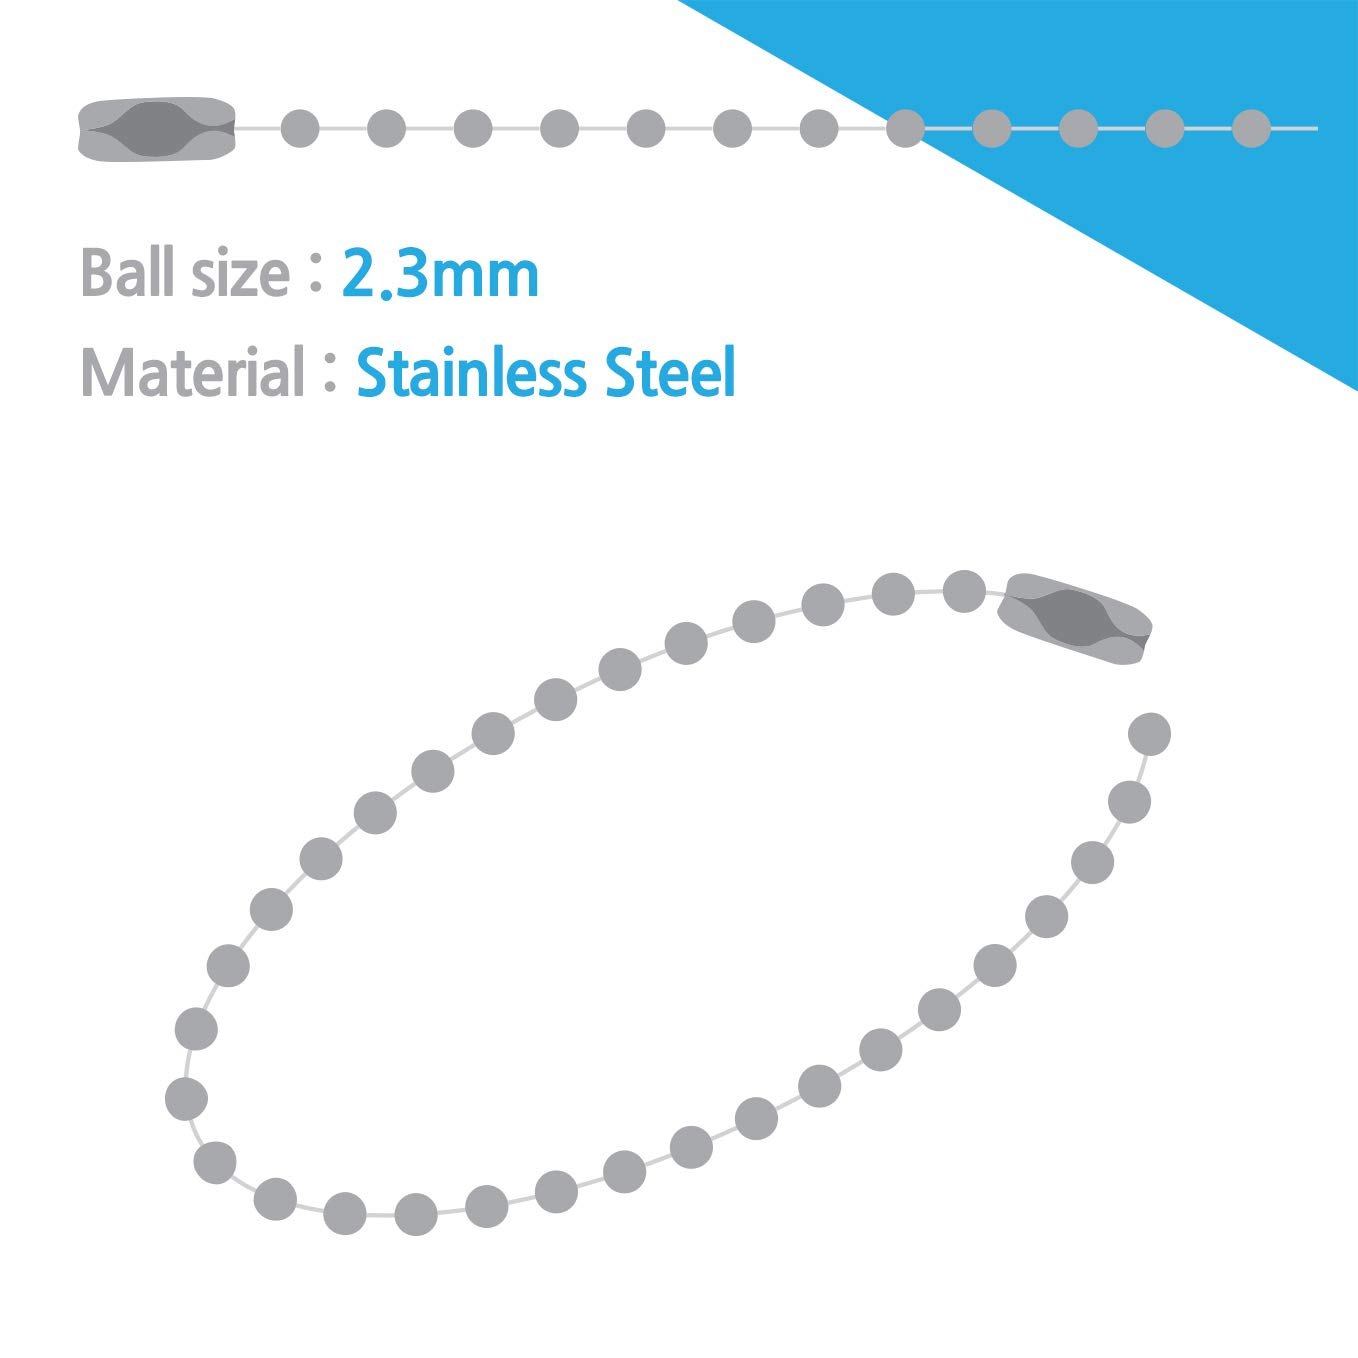 Ballchain Number 3 Connectors Stainless Steel 100 Count 50 Count/_Ballchain Number 3 Connectors Stainless Steel 50 Count